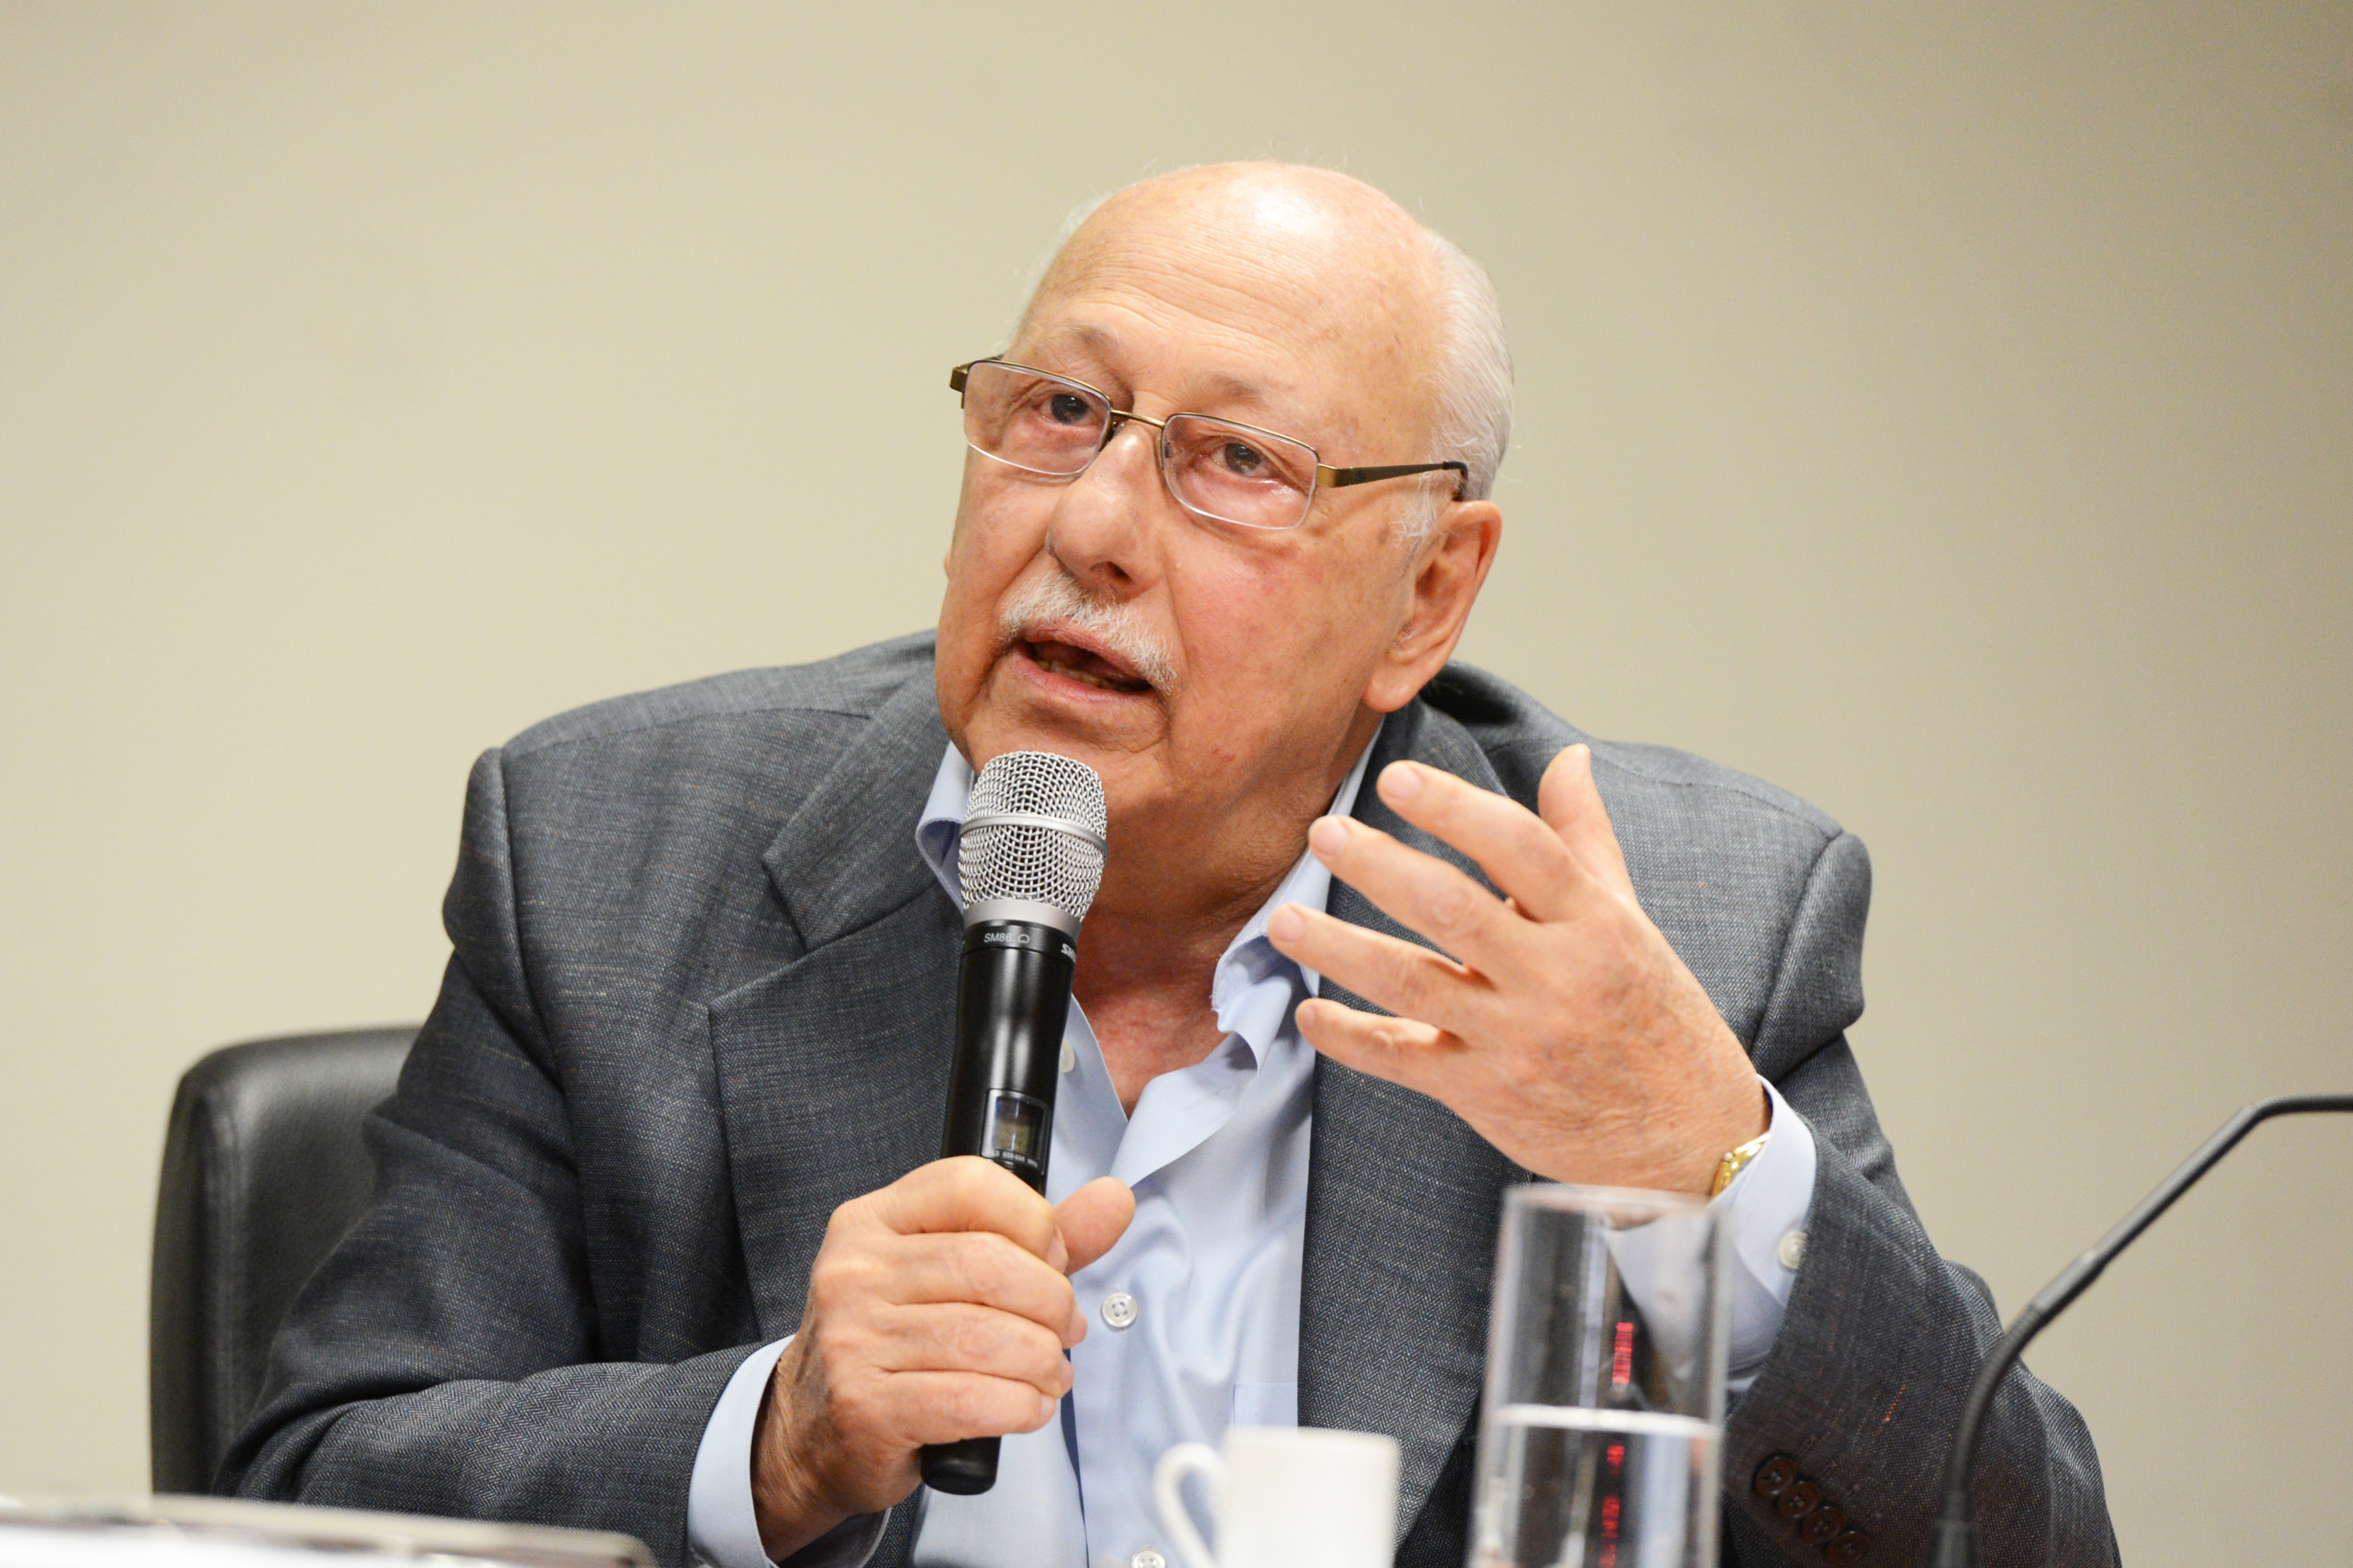 Walter Colli<a style='float:right' href='https://www3.al.sp.gov.br/repositorio/noticia/N-09-2014/fg165042.jpg' target=_blank><img src='/_img/material-file-download-white.png' width='14px' alt='Clique para baixar a imagem'></a>